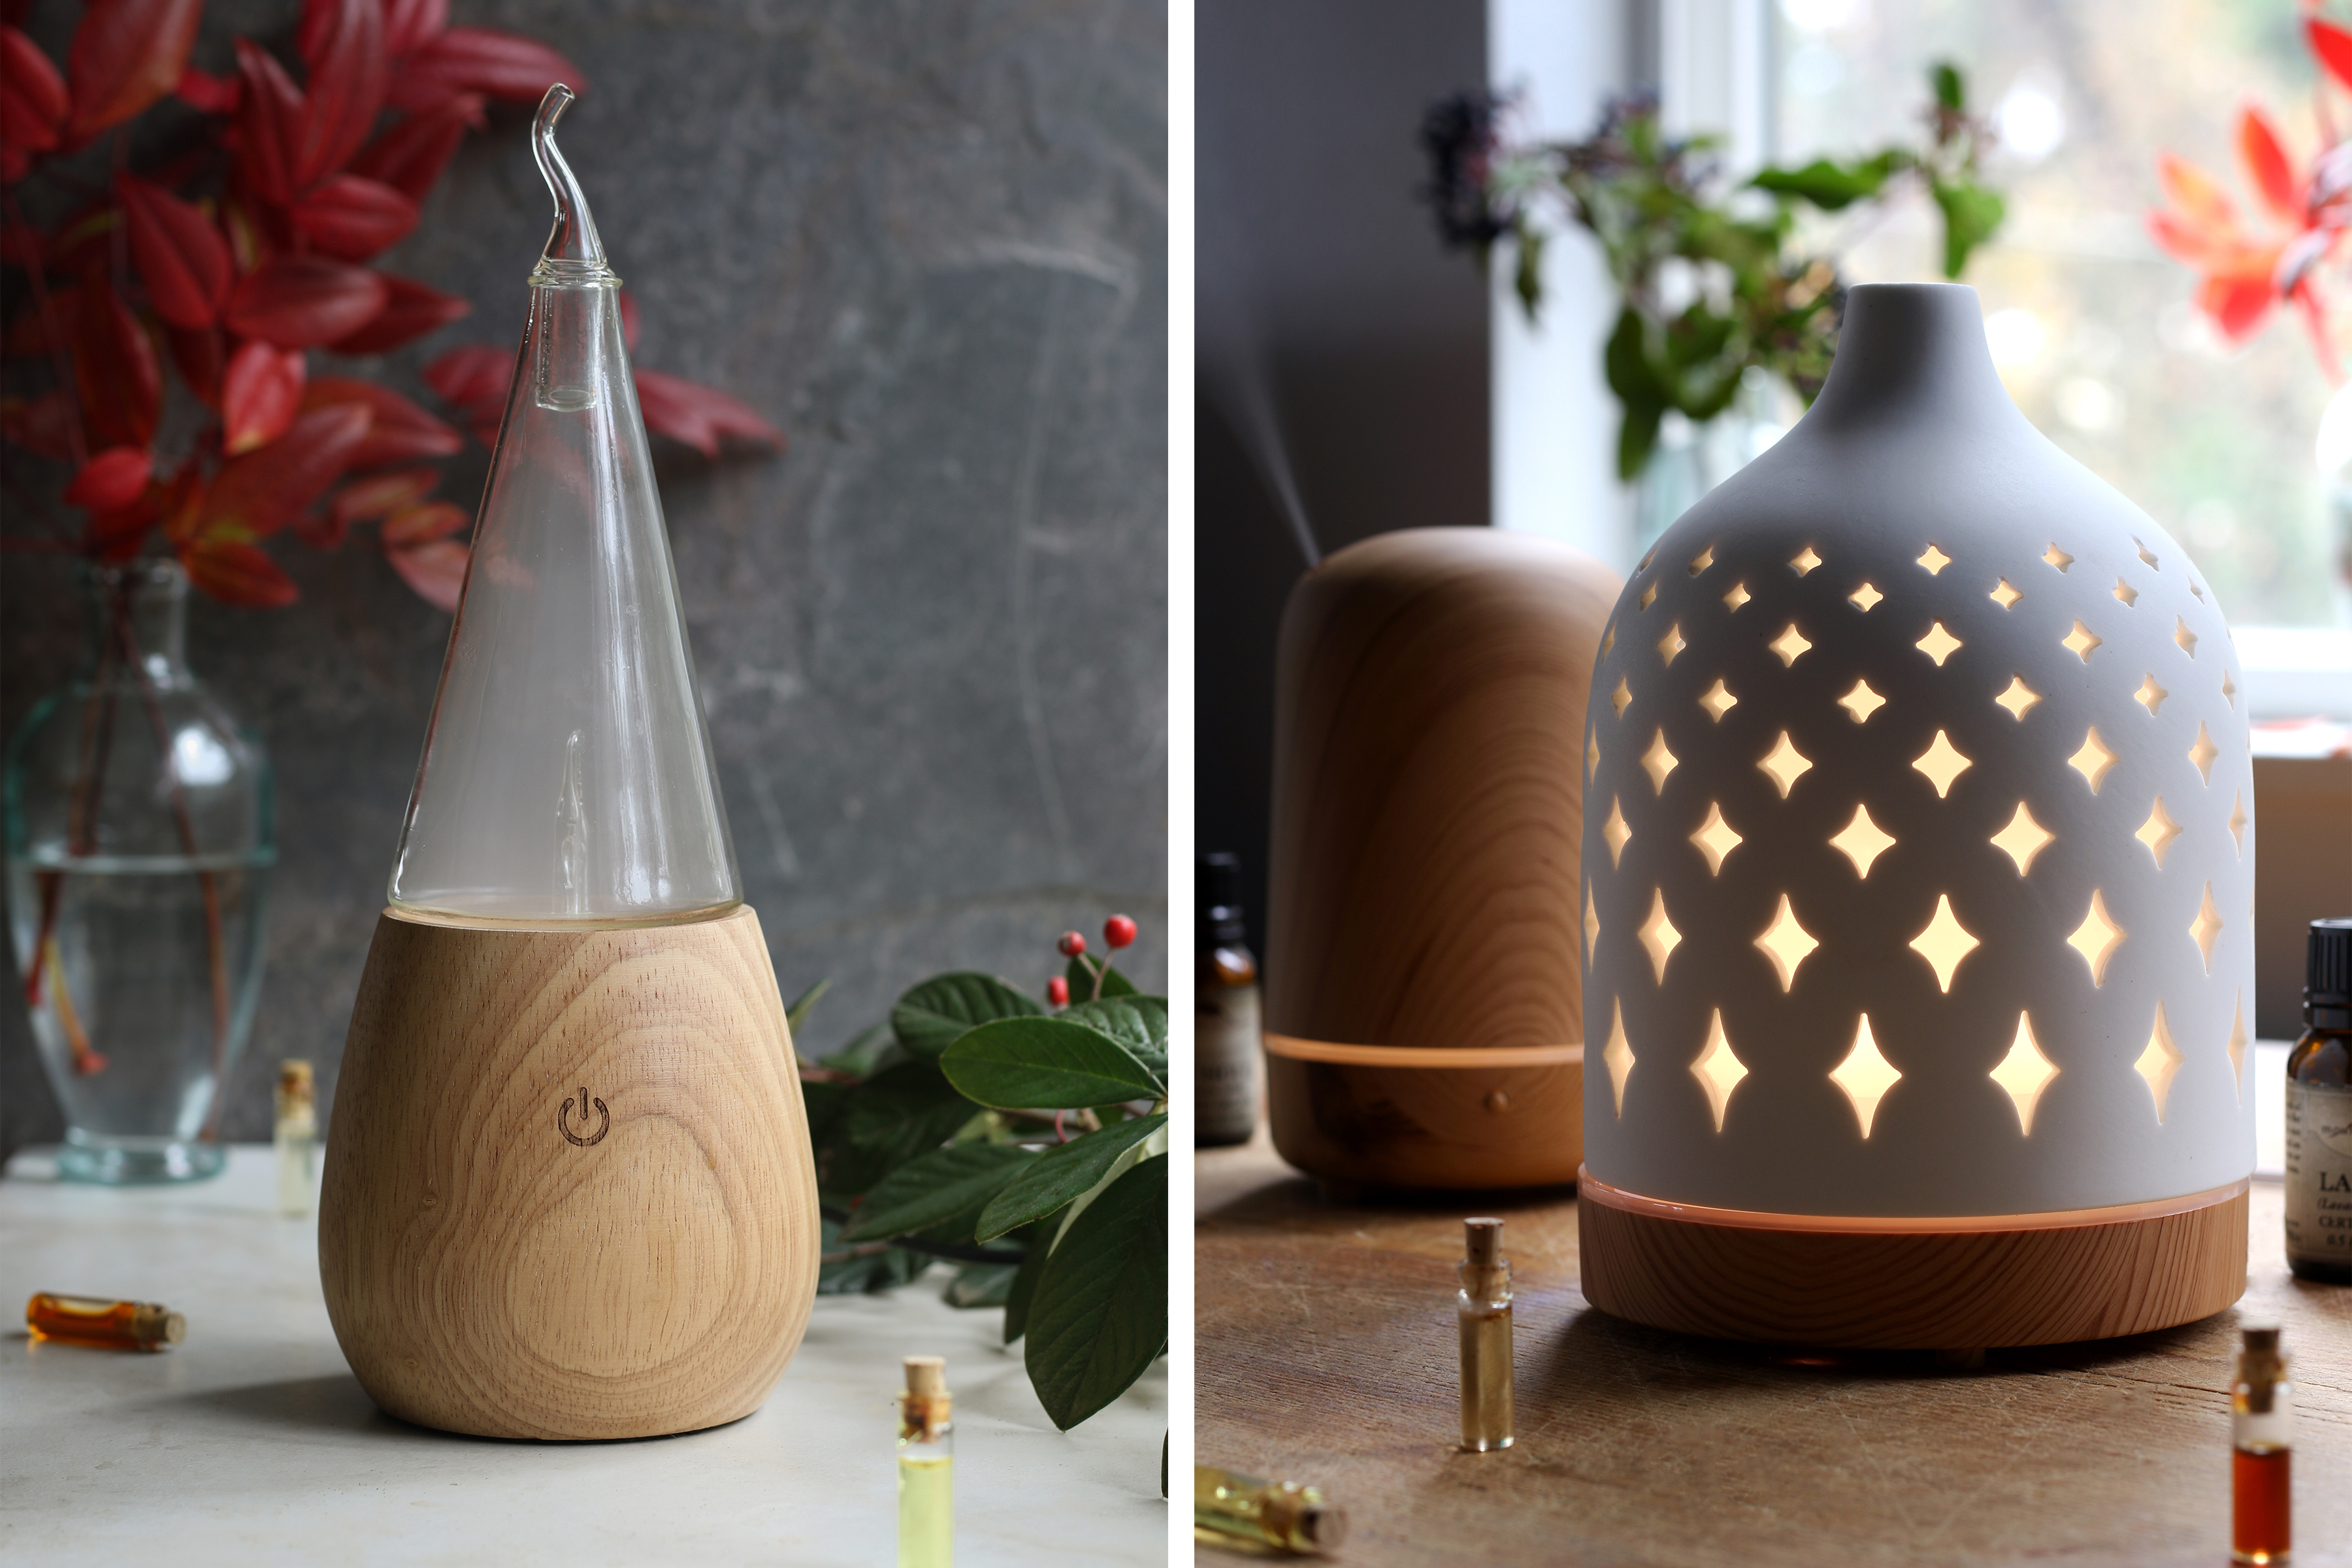 Examples of ultrasonic essential oil diffusers such as the ziba waterless diffuser and the serene house water diffusers.